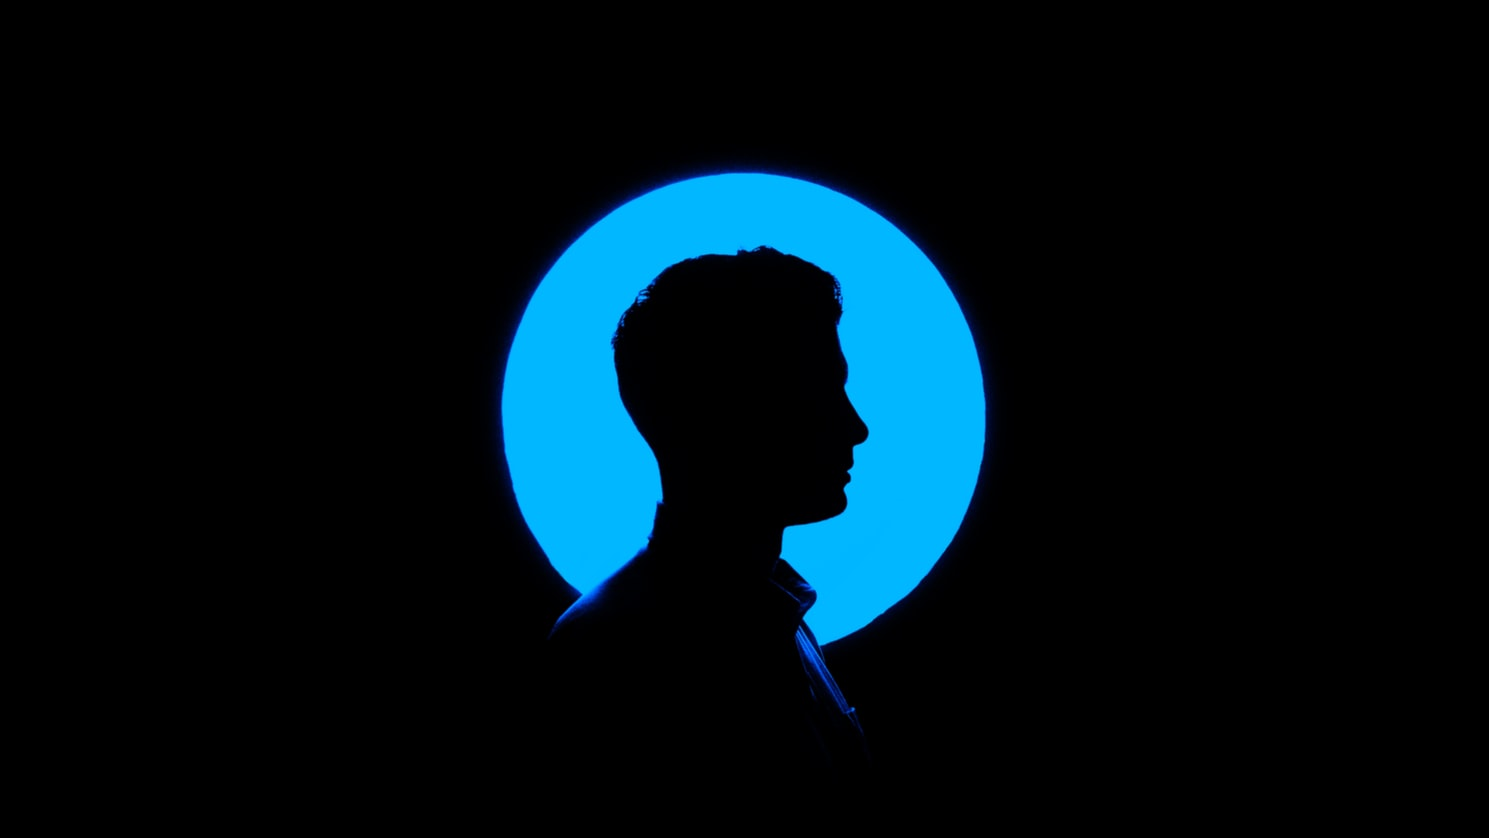 Silhouette of a man in front of a blue circle